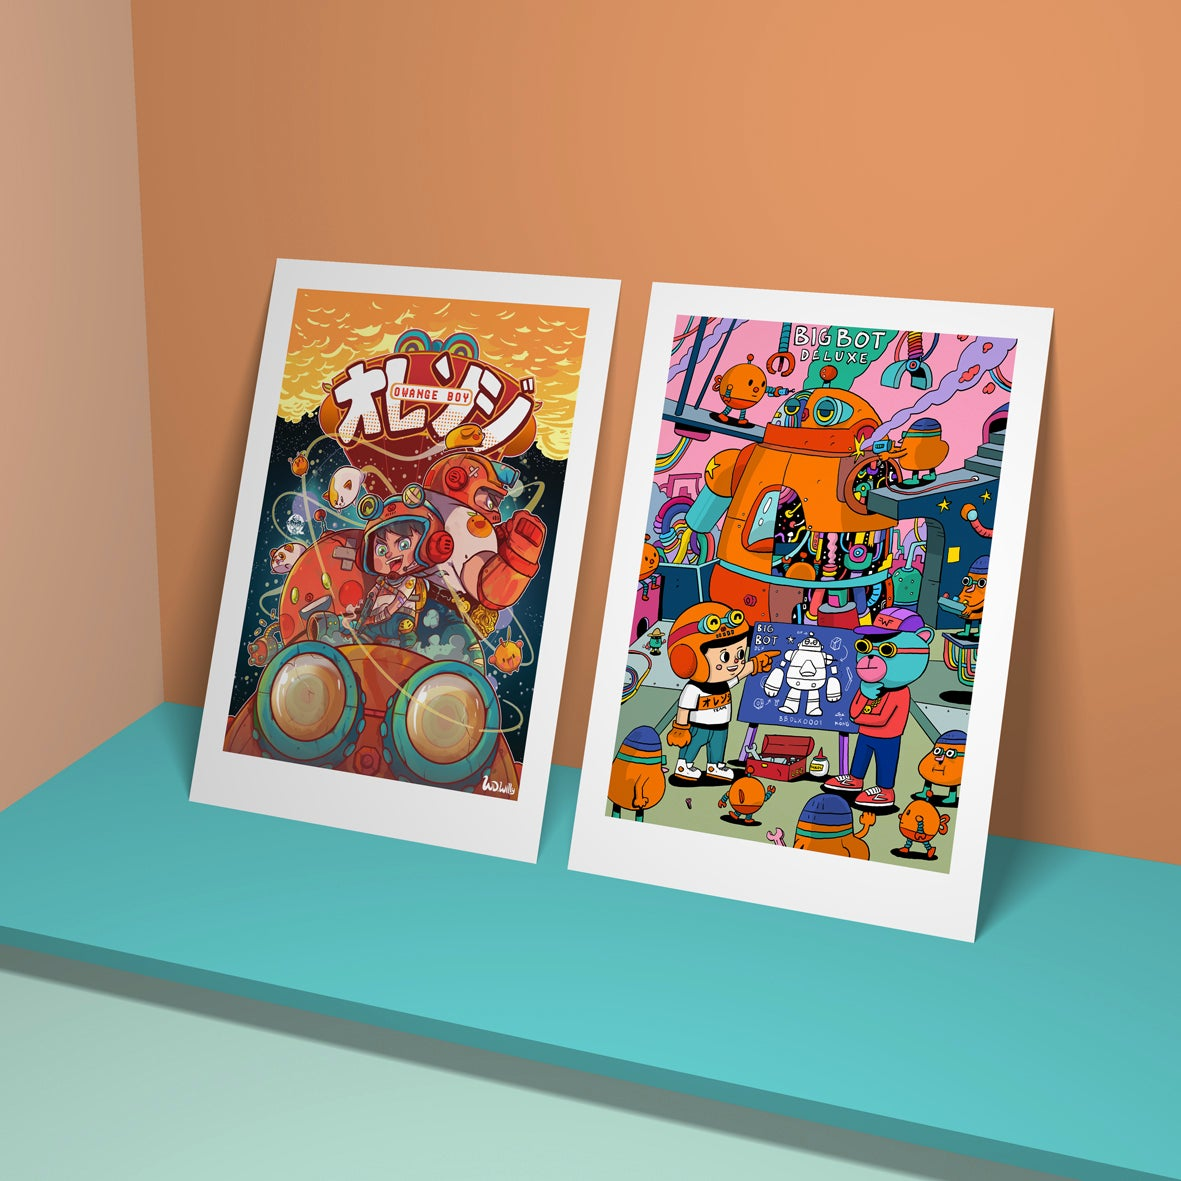 Image of Owange team art print collaboration with Wede Willy